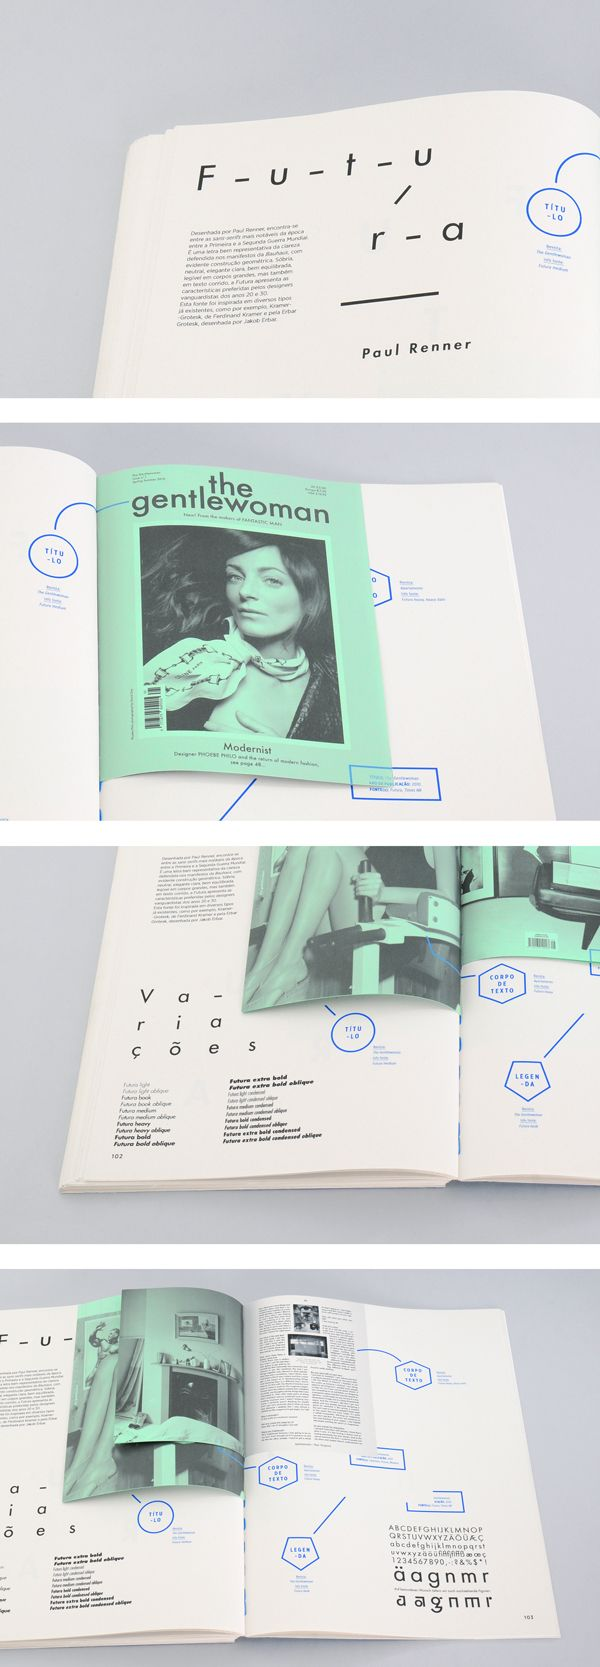 WHAT—NOT on Editorial Design Served